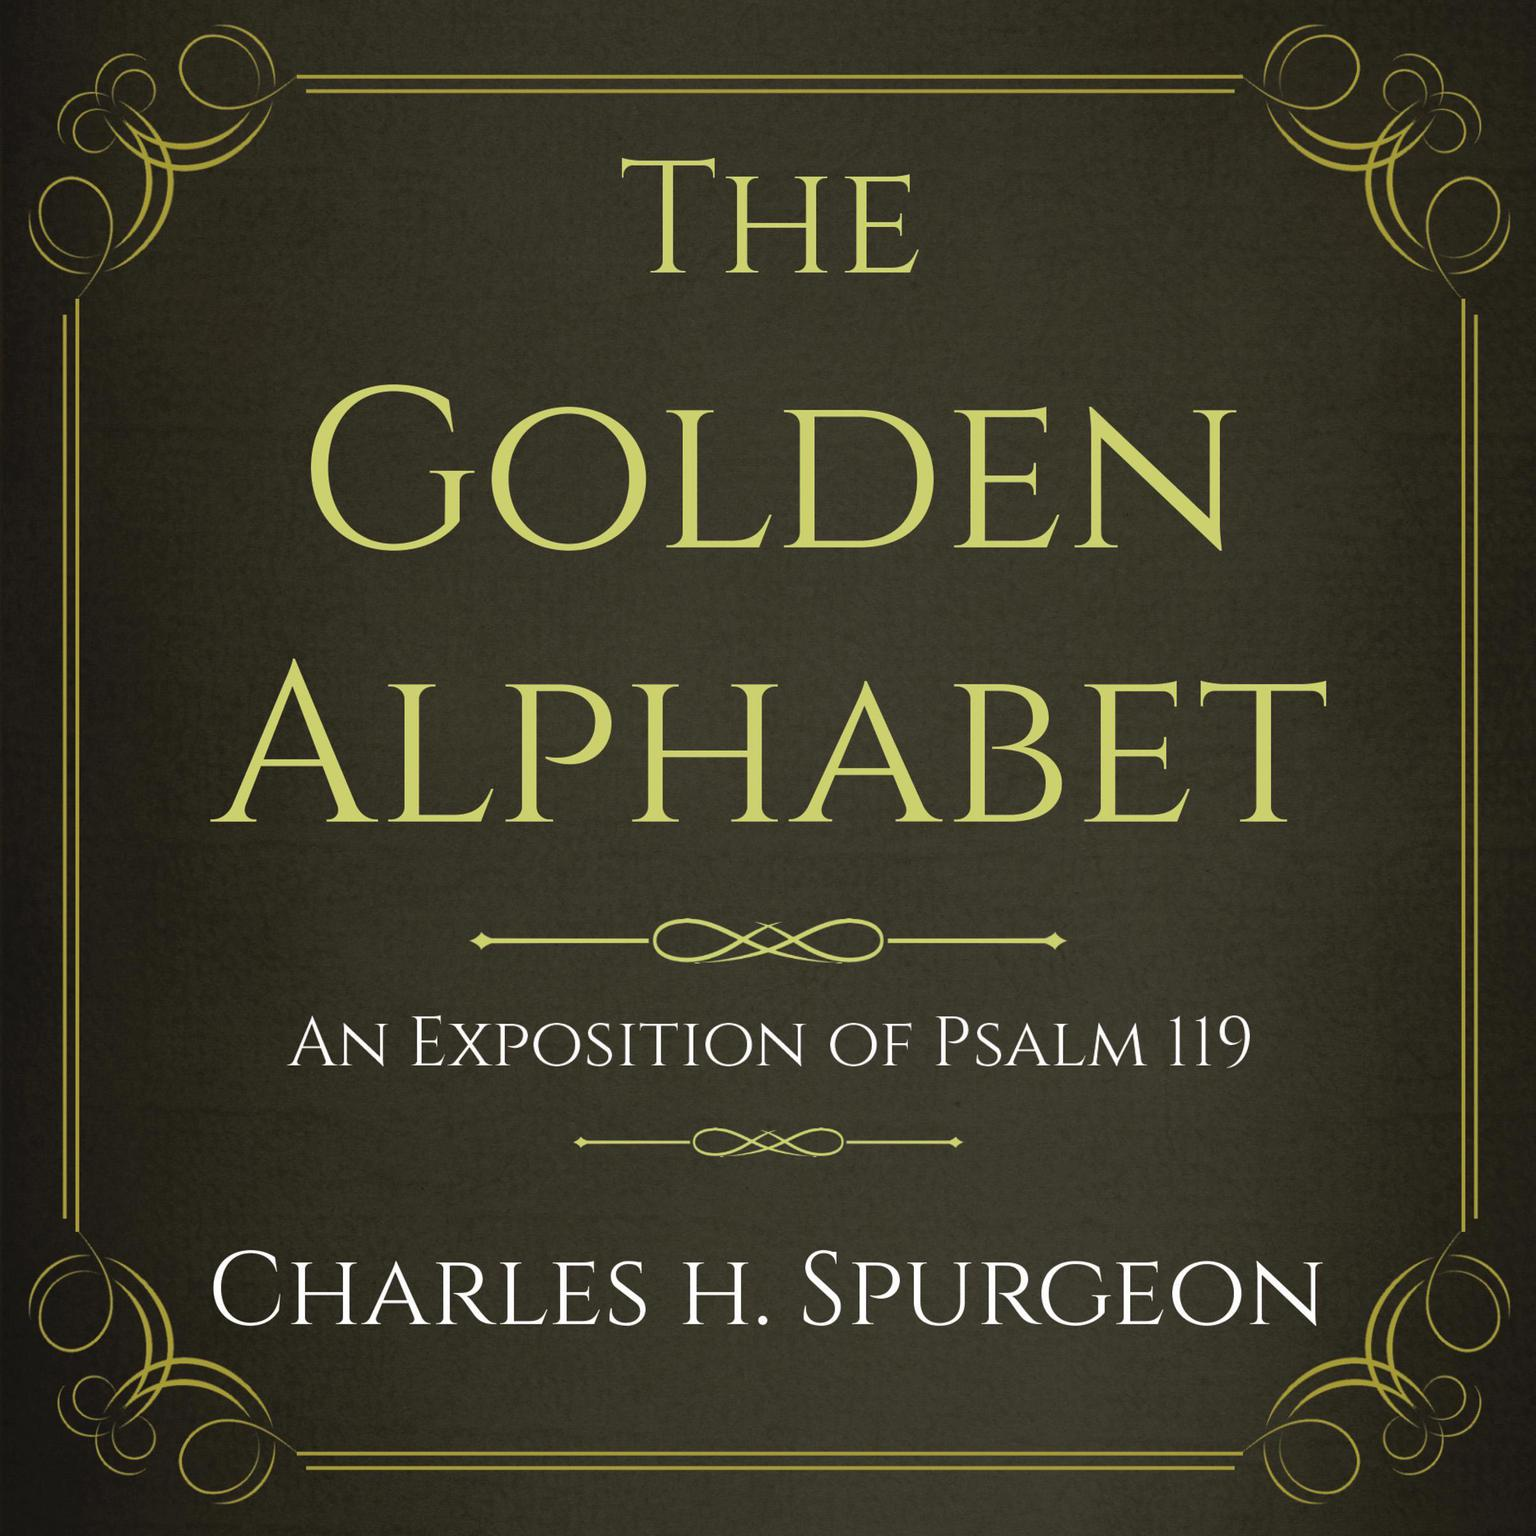 The Golden Alphabet: An Exposition of Psalm 119 Audiobook, by Charles H. Spurgeon